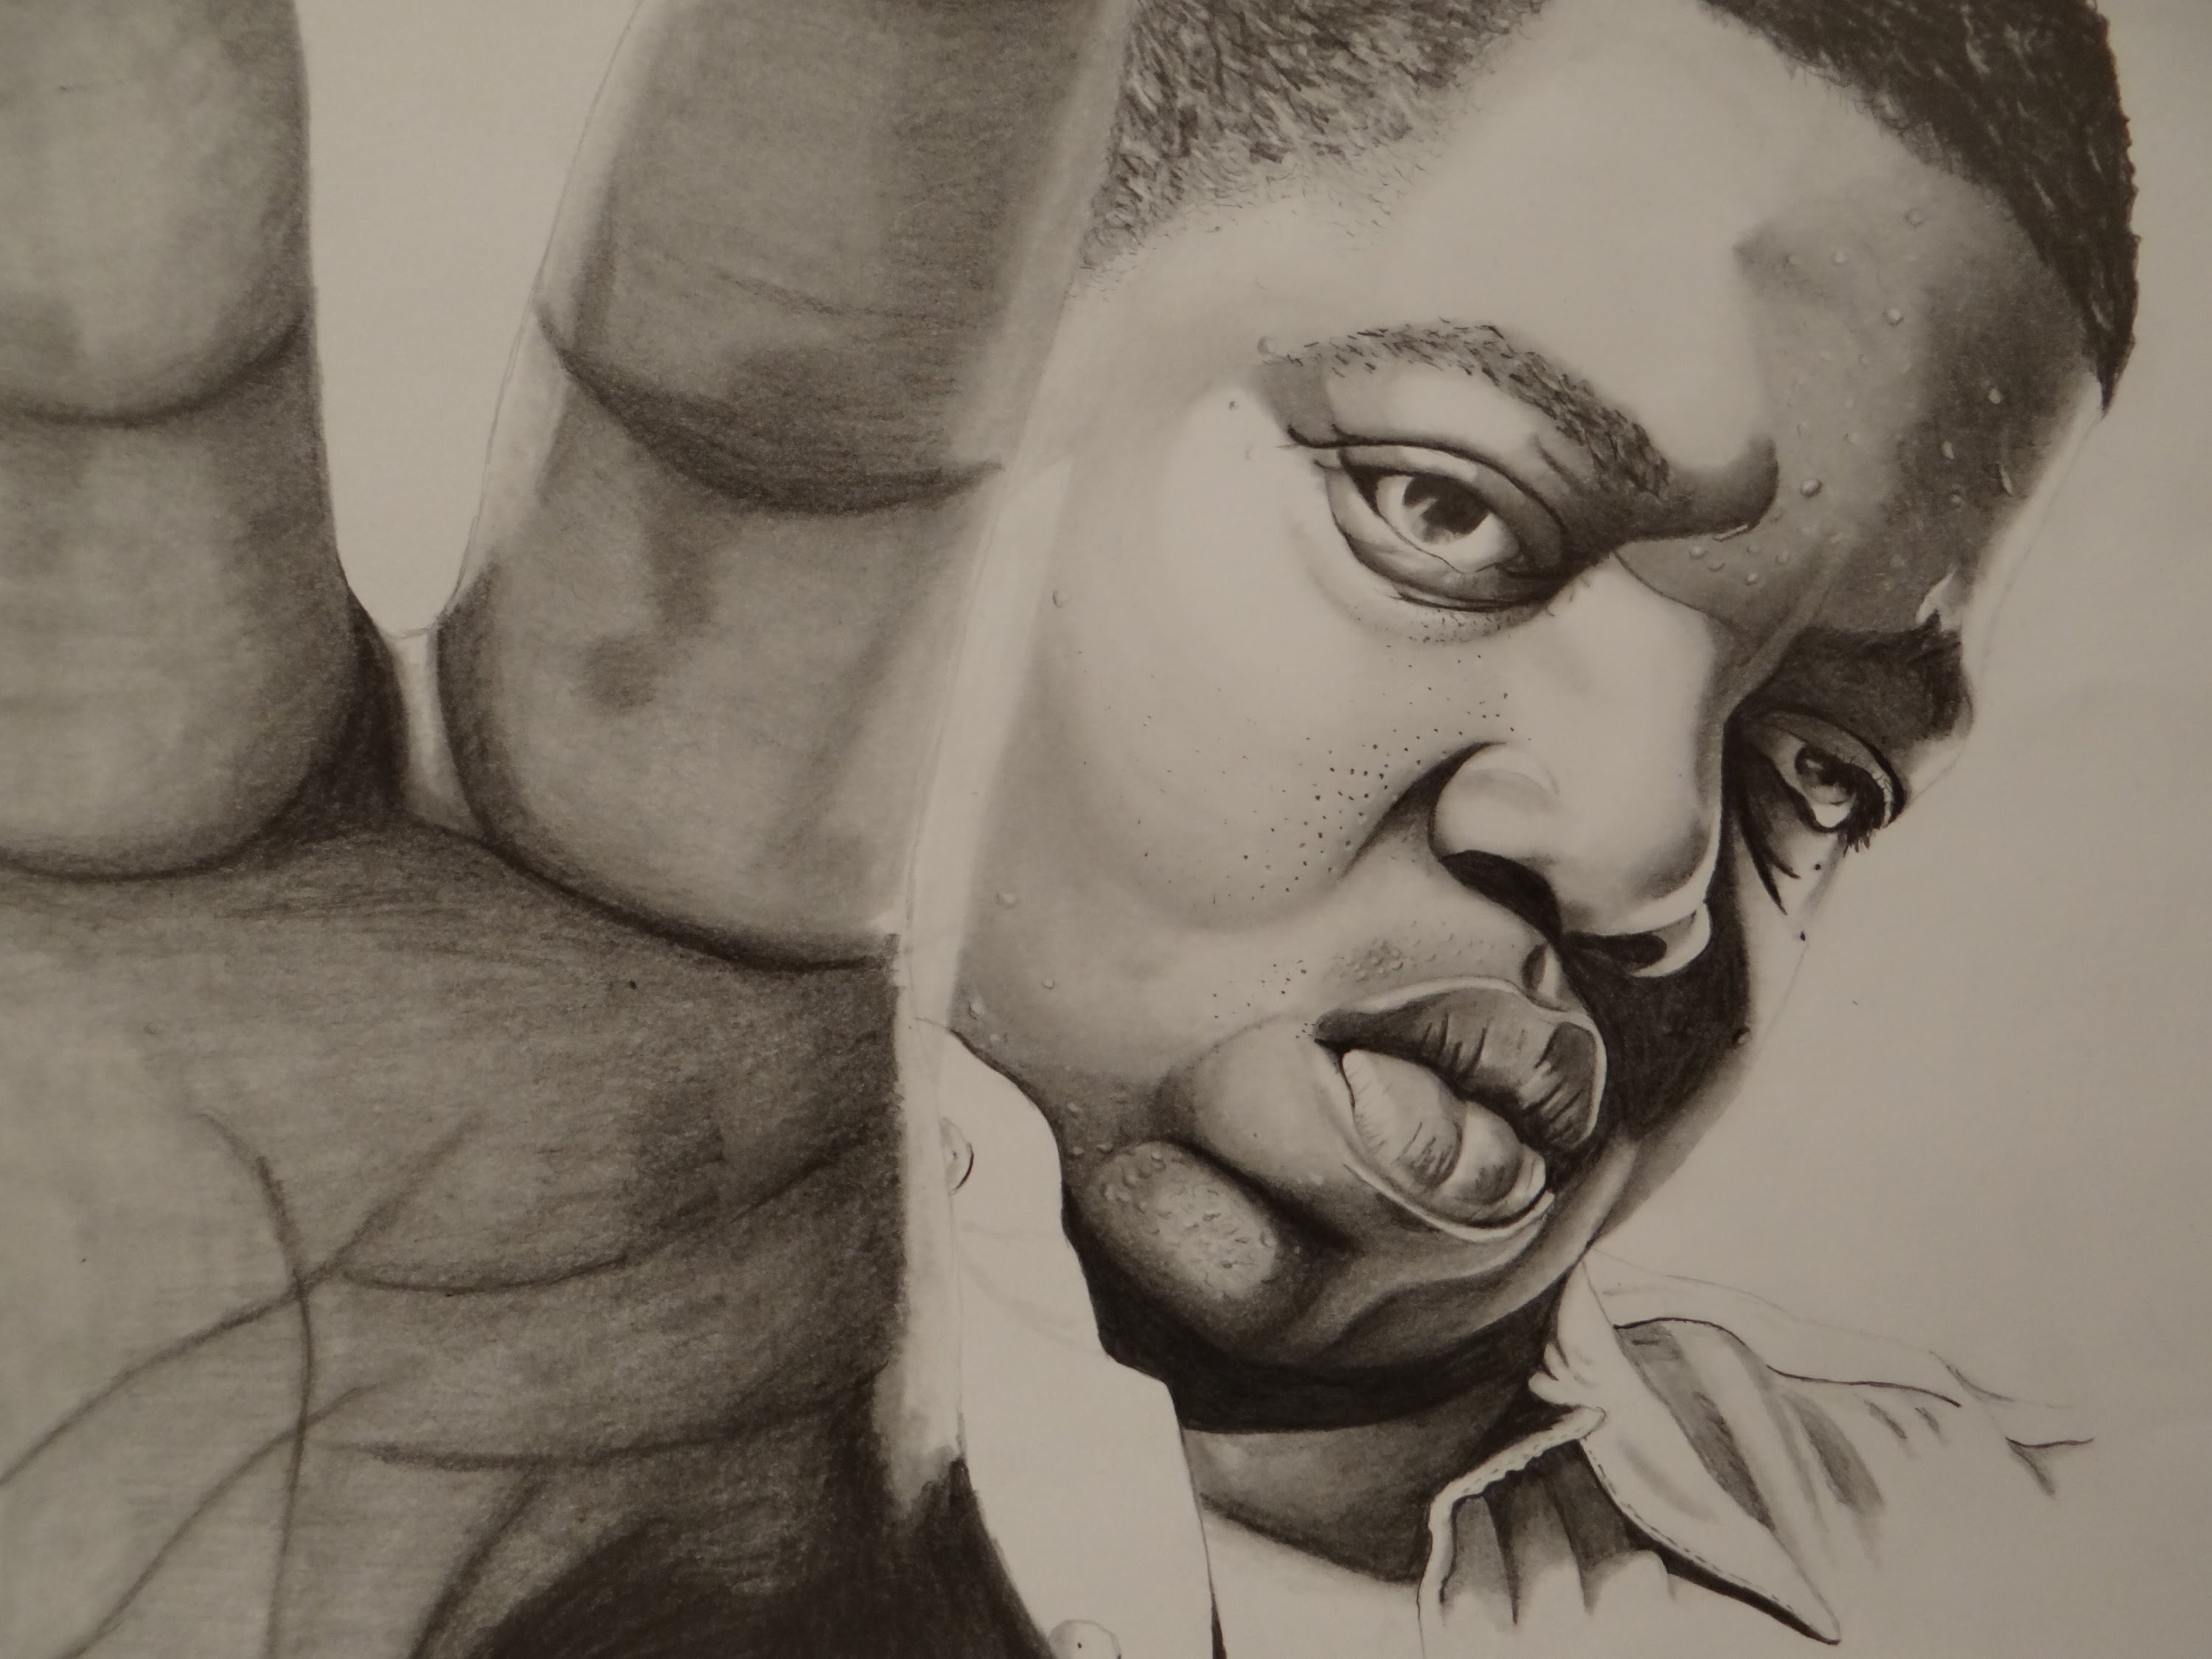 3000x2250 Biggie Smalls Drawing Pencil Drawing Of The Notorious B.i.g.